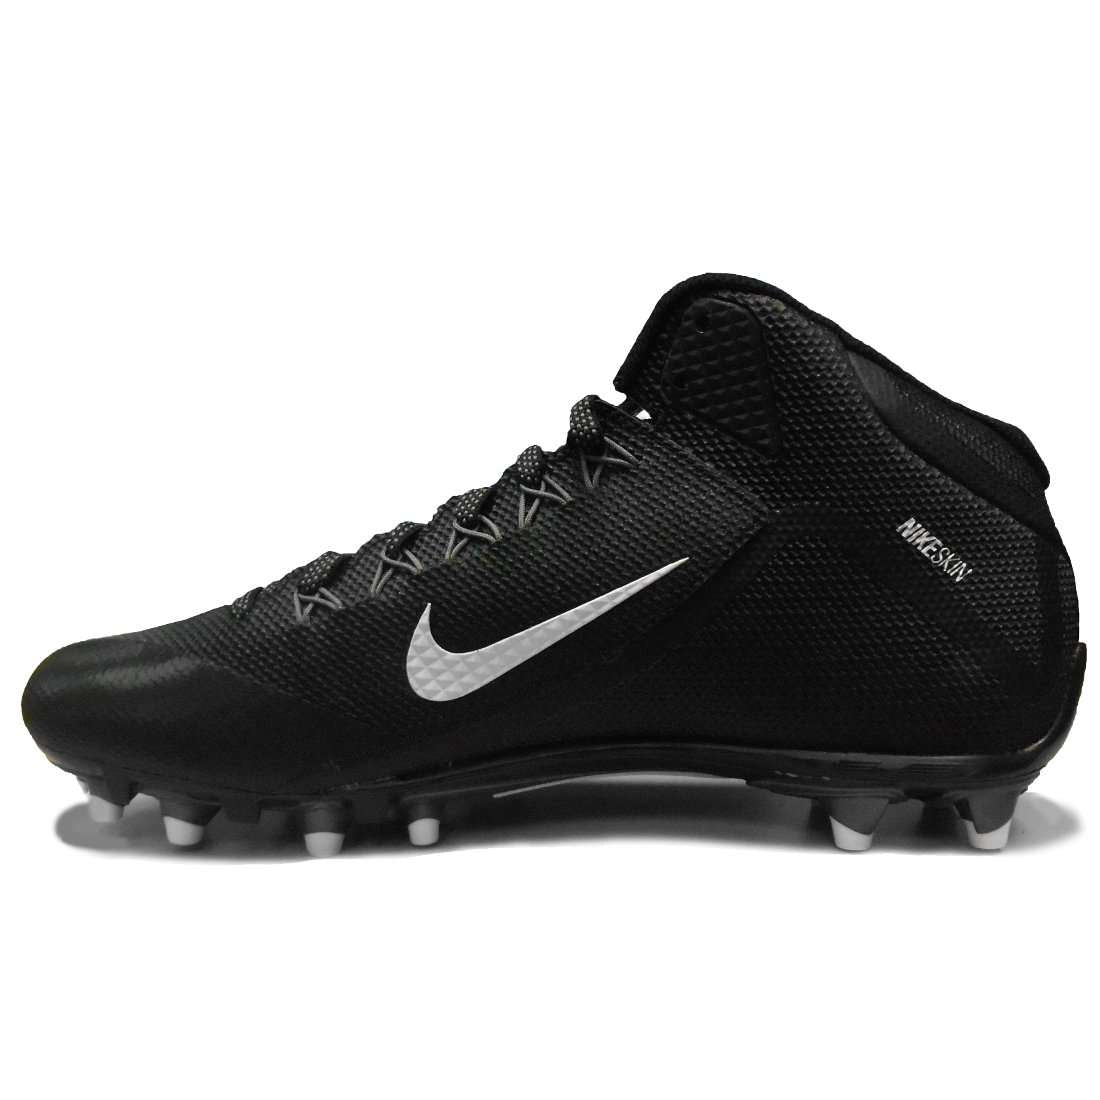 9dd992c41d16 ... Nike Alpha Pro 2 3 4 TD Football Cleats - League Outfitters ...